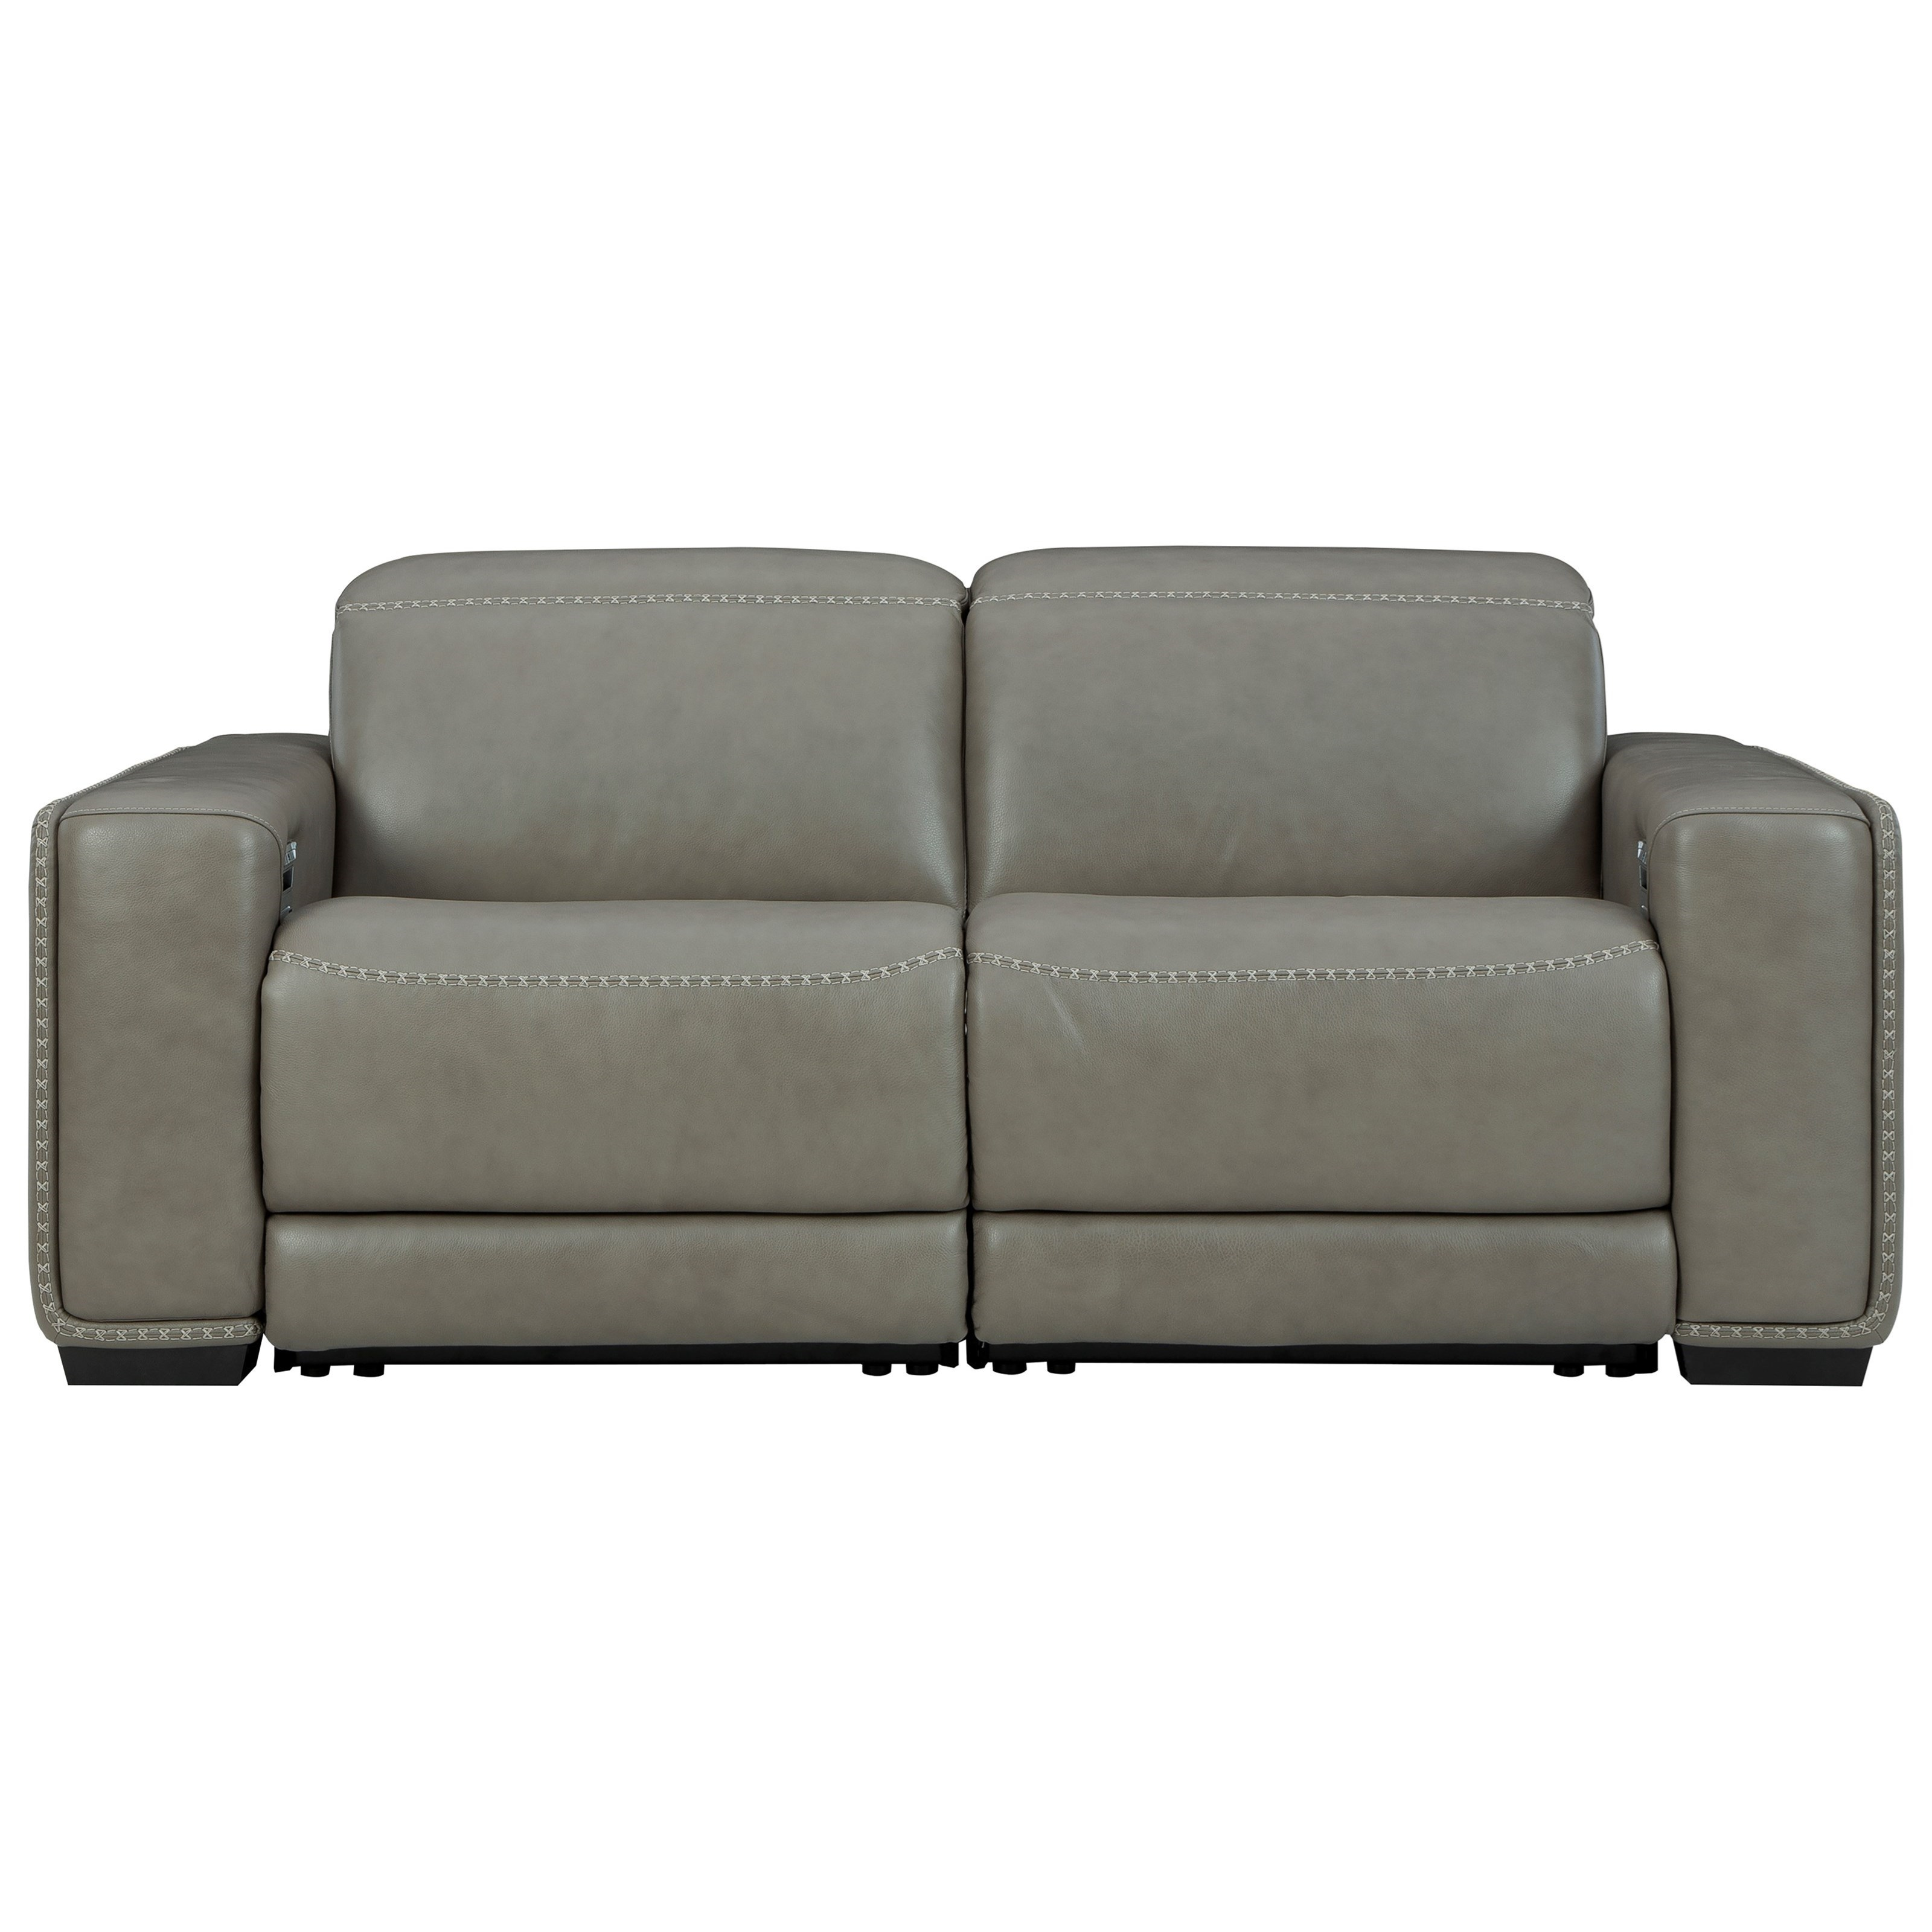 Correze Power Reclining Loveseat by Signature Design by Ashley at Northeast Factory Direct